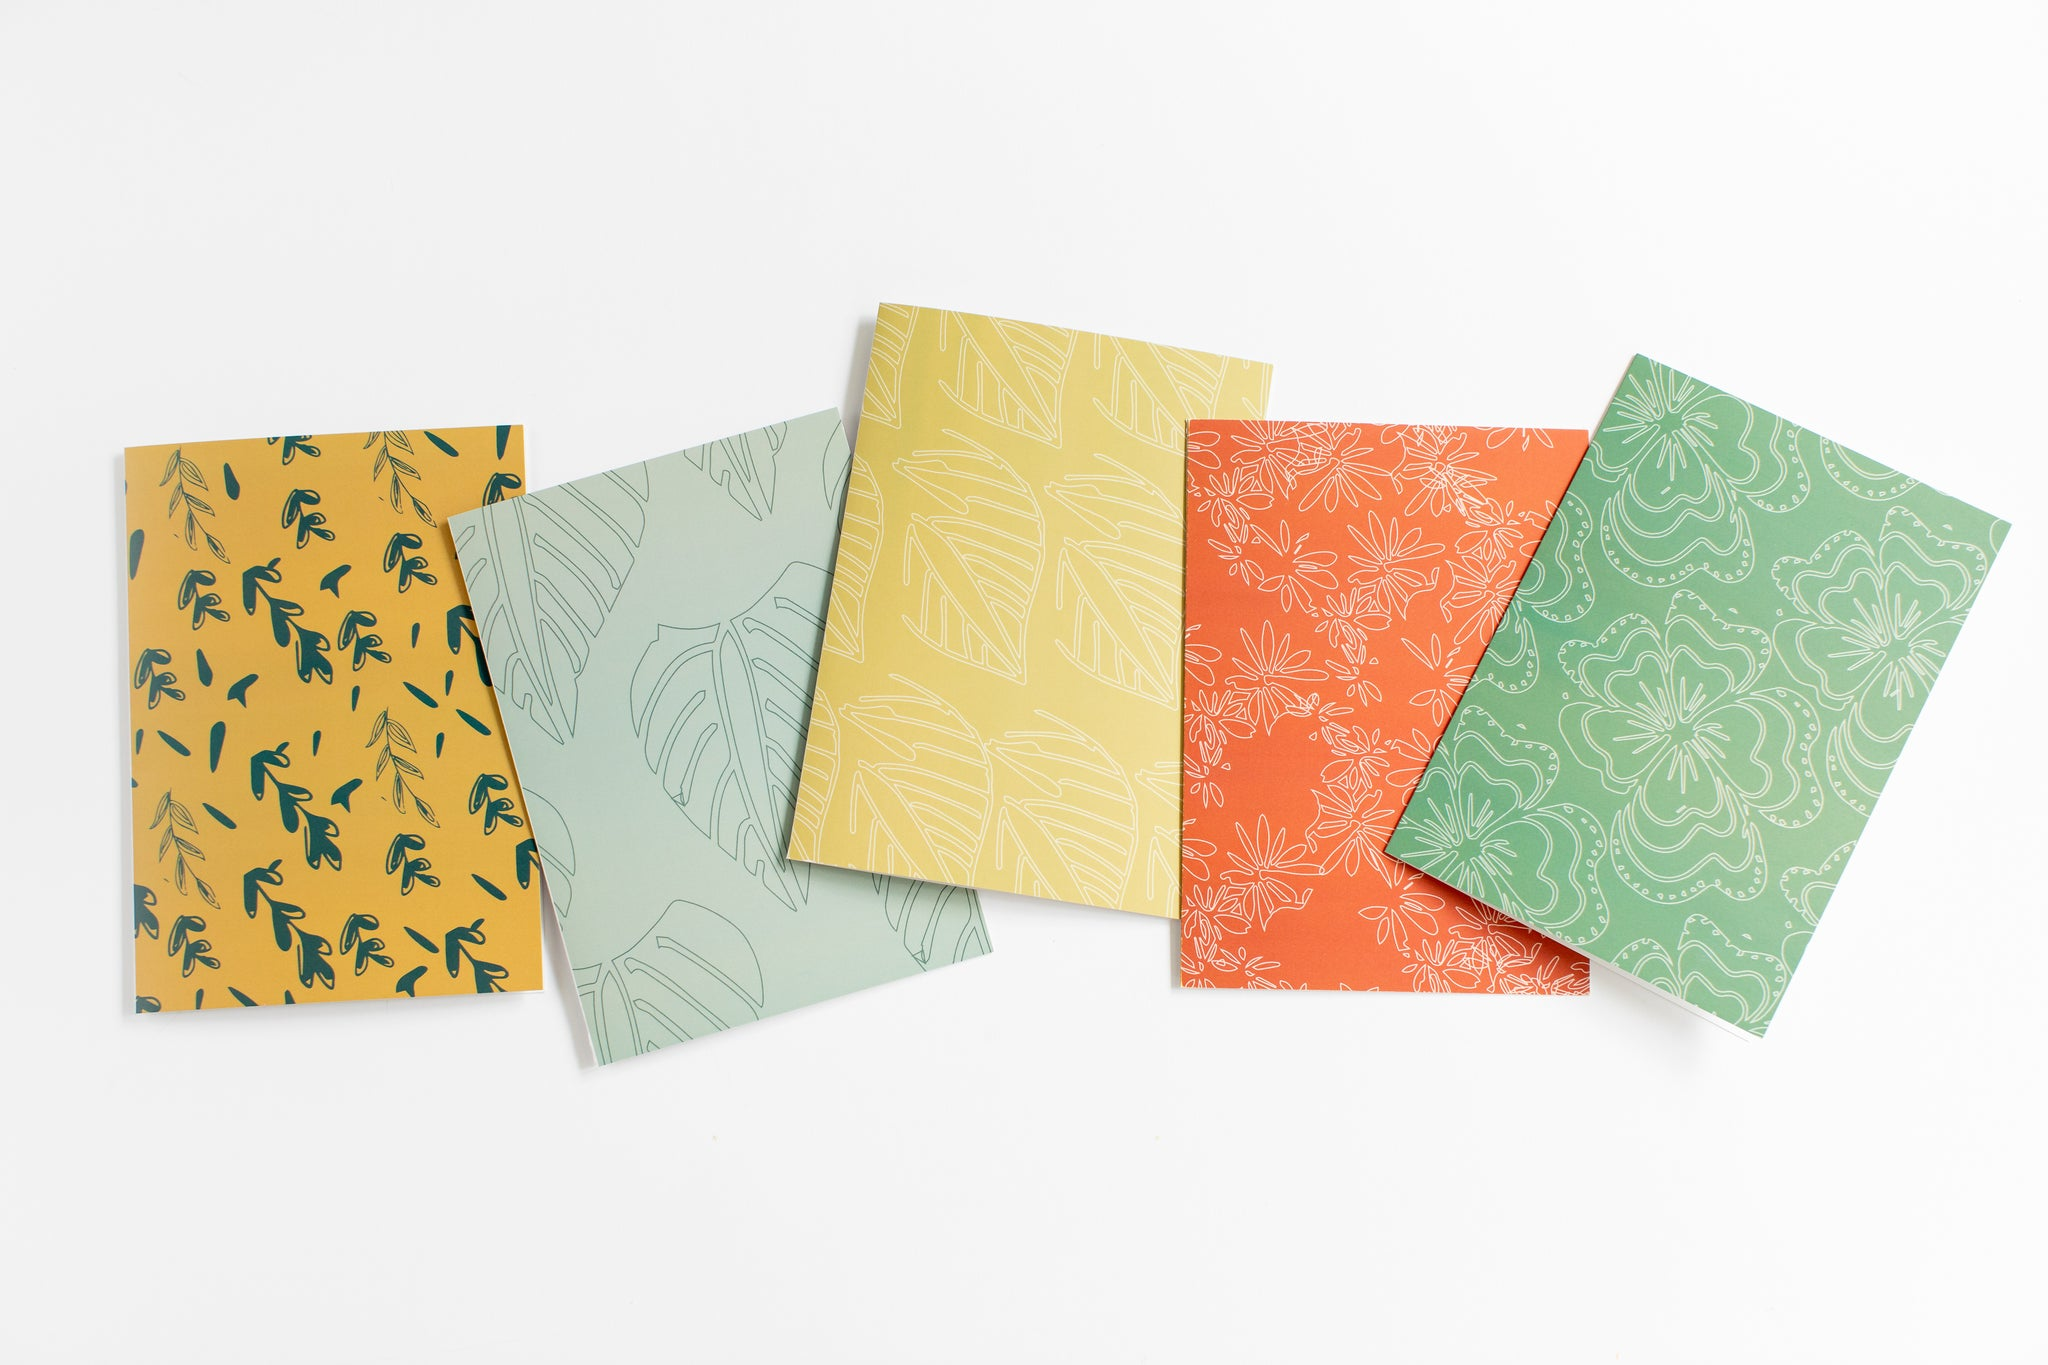 Sanaa Floral Greeting Cards | Variety Pack of 10 Blank Cards + Envelopes